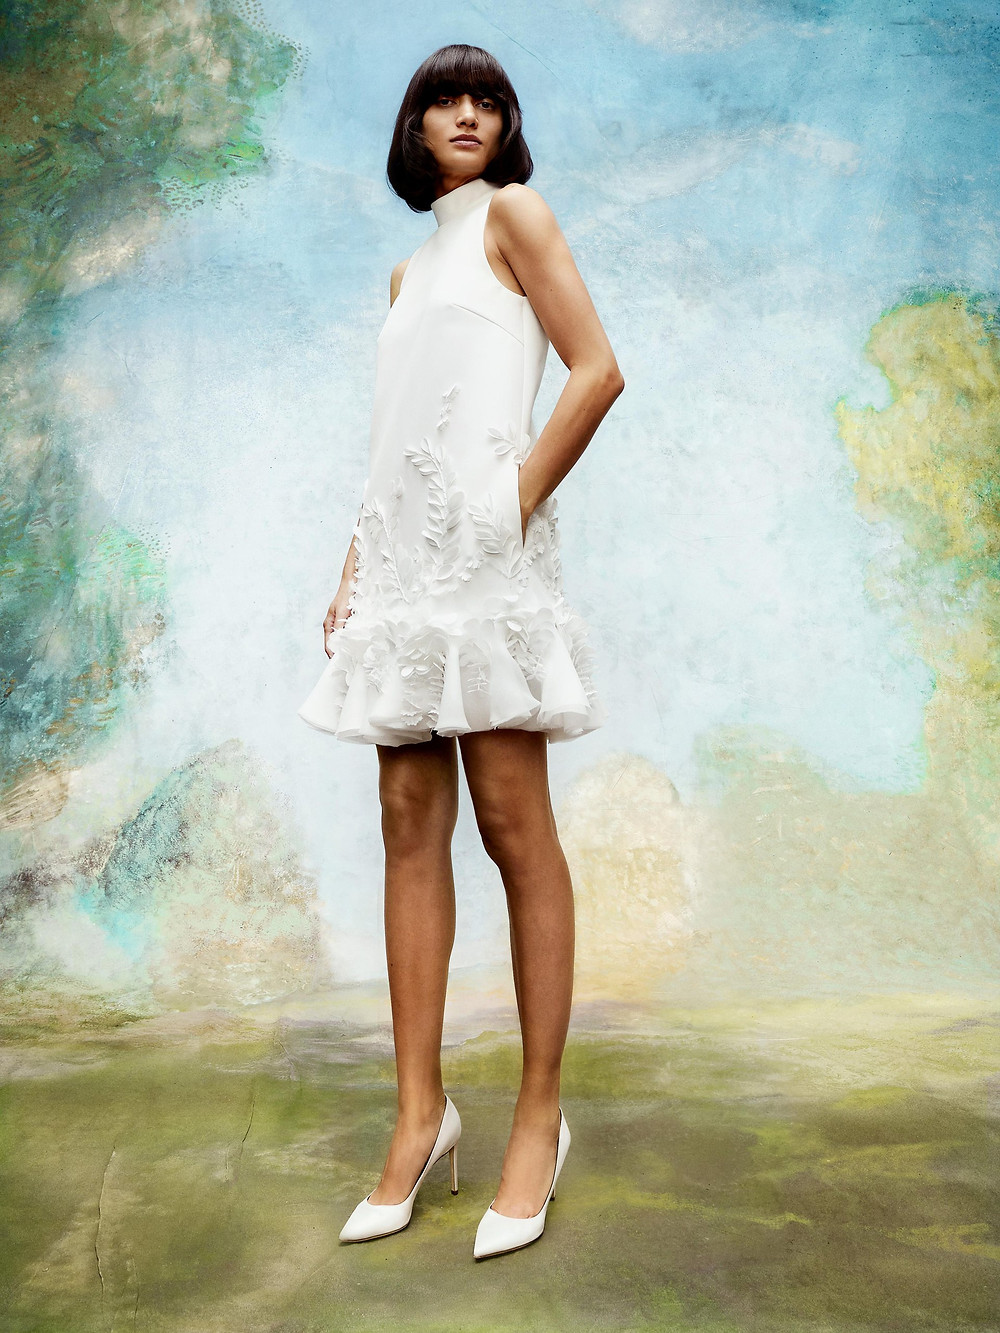 A Viktor & Rolf short crepe wedding dress with a high neck, ruffles and floral detail